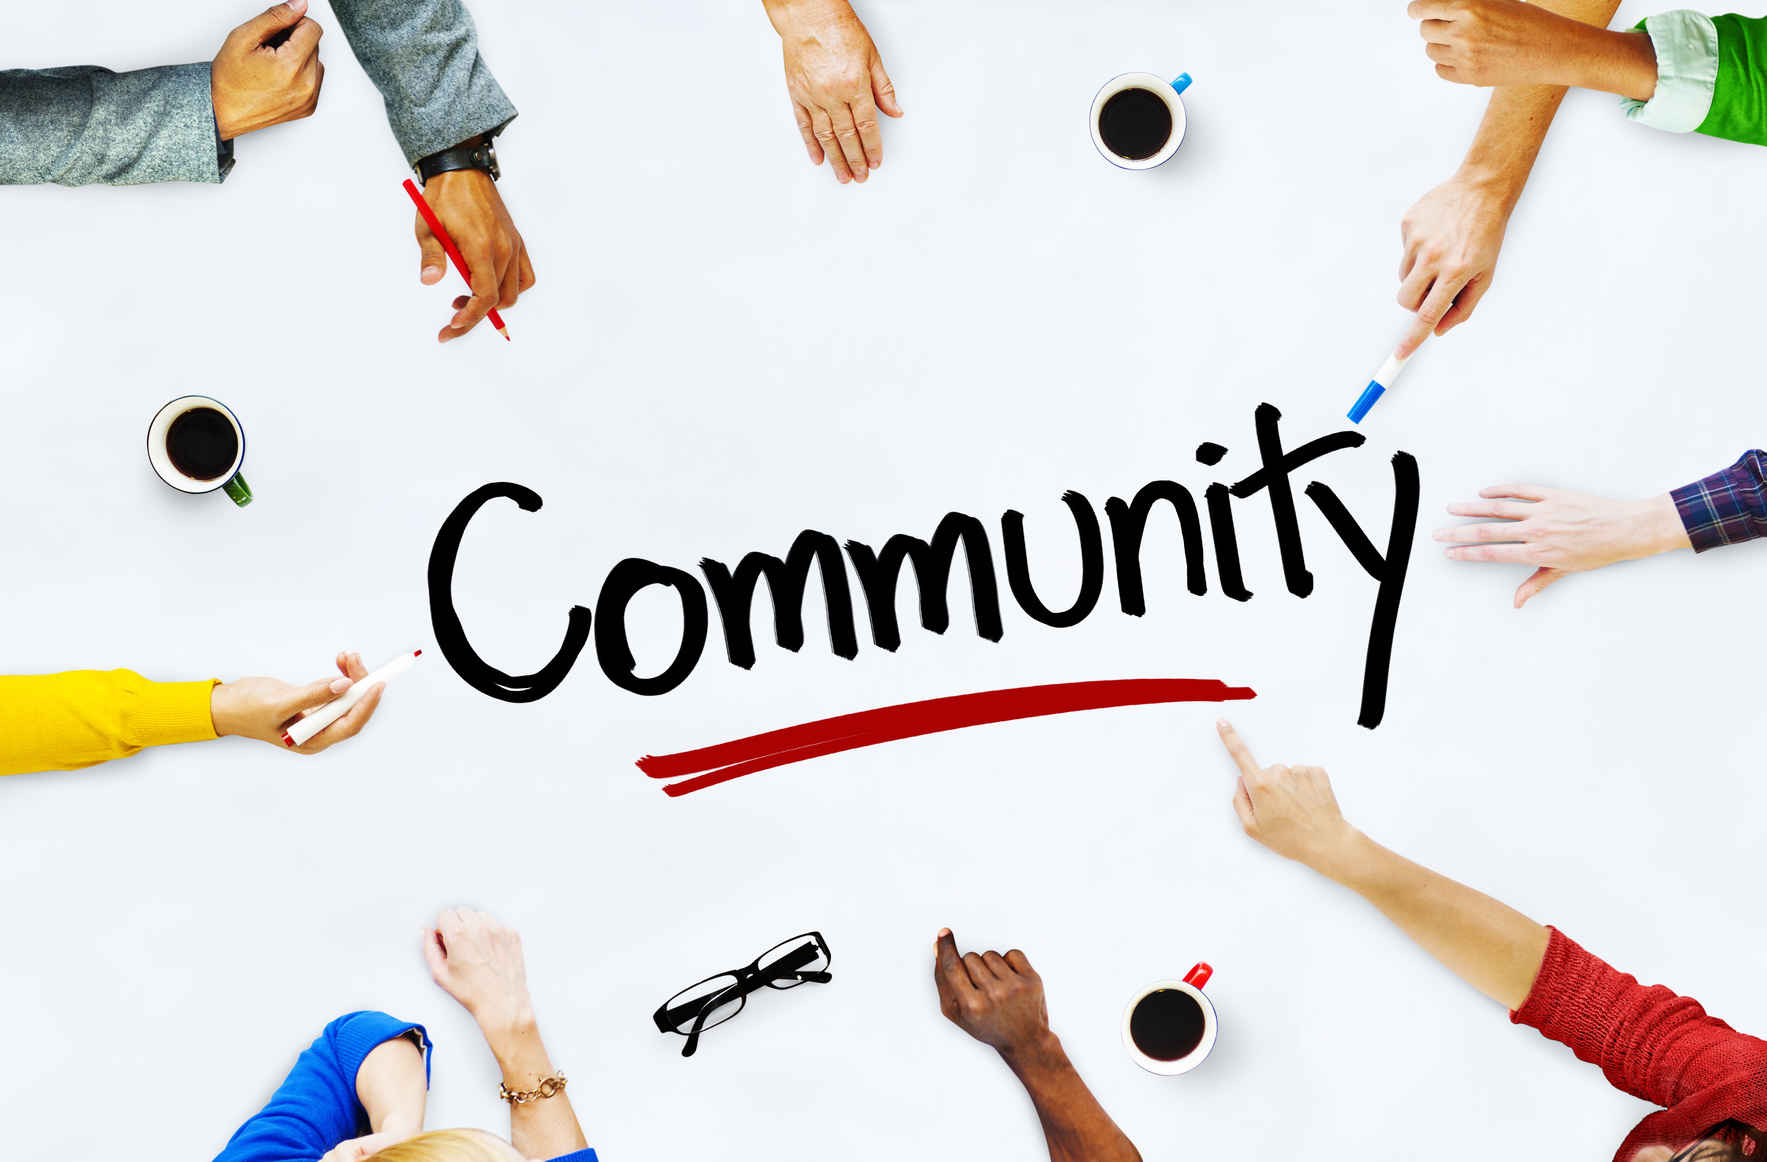 Donate now to help create a community in which every individual is financially self-sufficient; is empowered to help bring about positive change in their neighborhoods; and has access to resources that will enable them to reach their full potential.   image